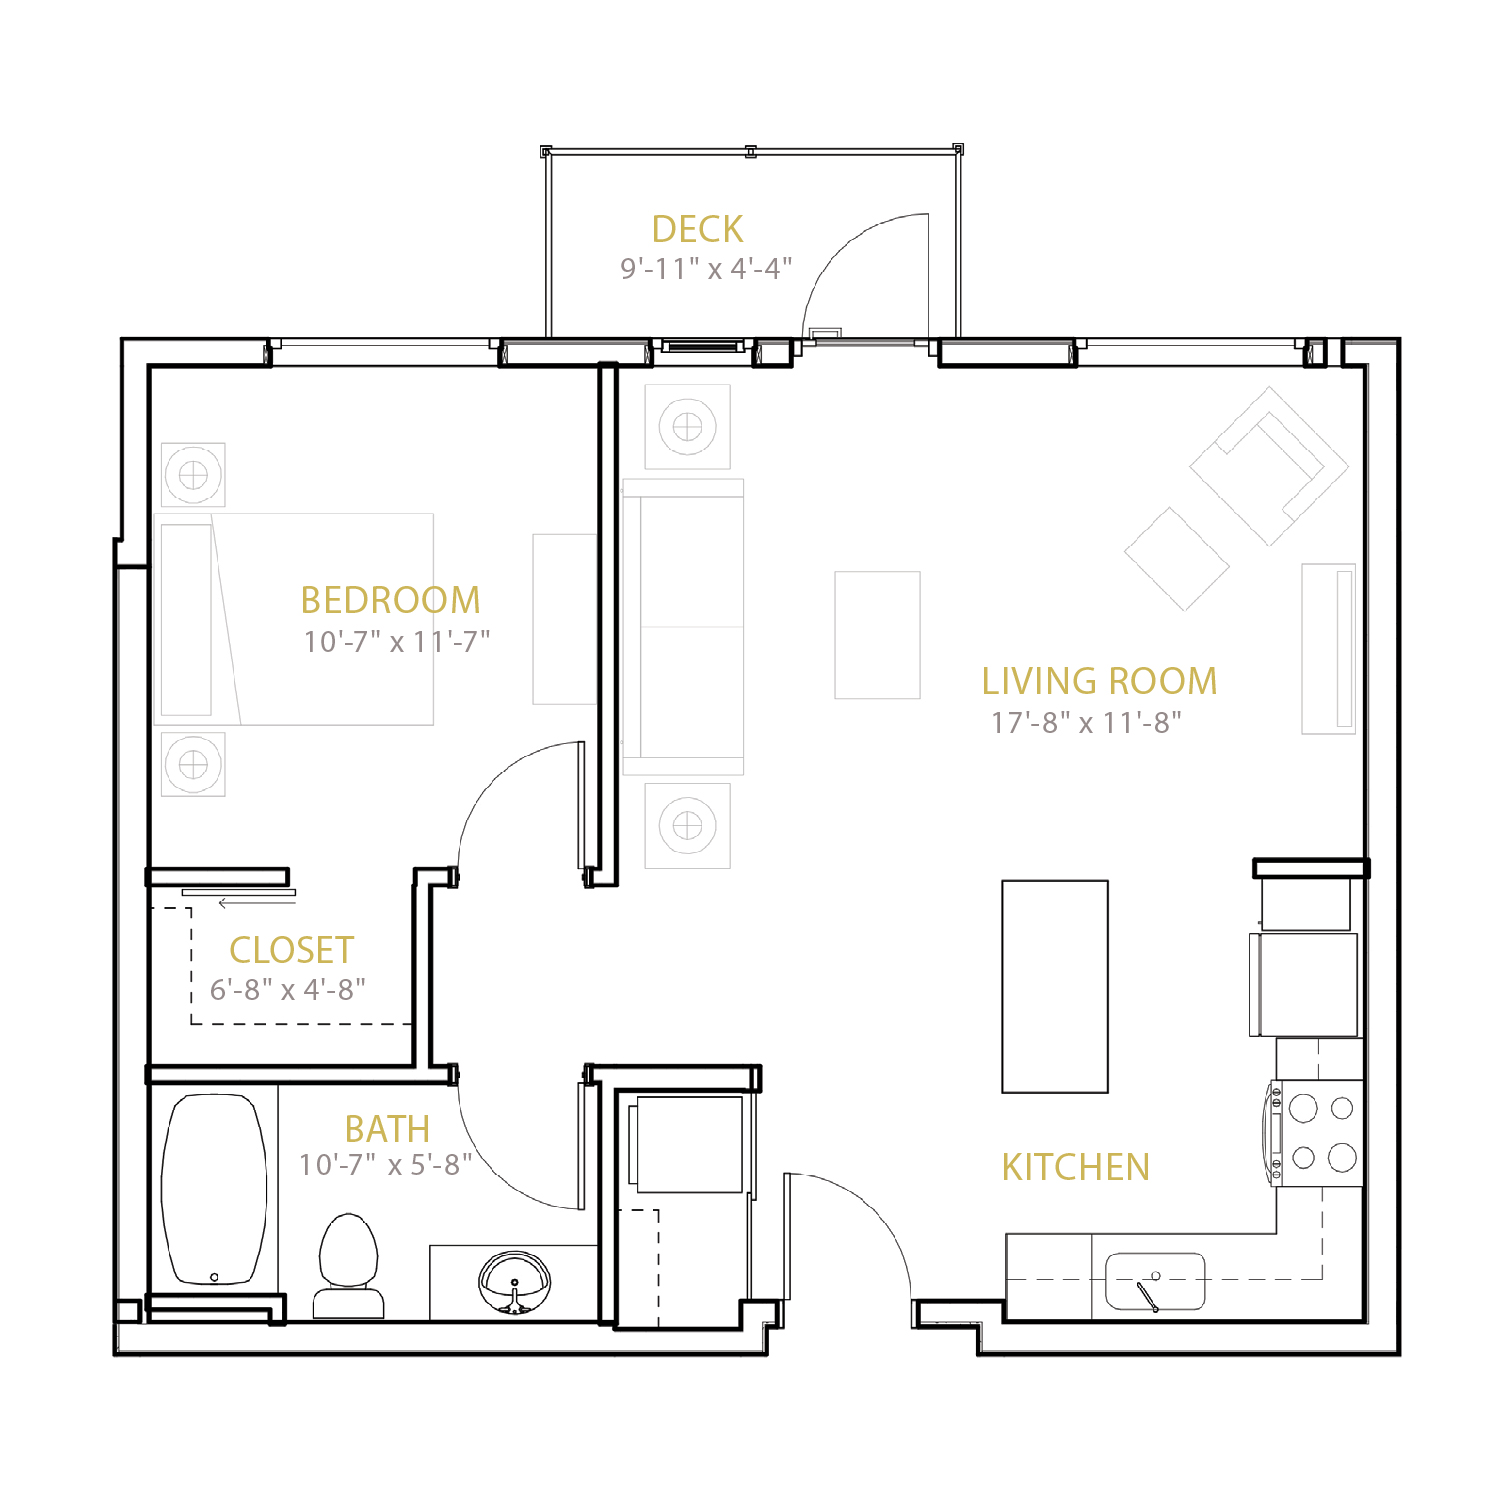 B Four floor plan diagram. One bedroom, one bathroom, an open kitchen and living area, and a deck.